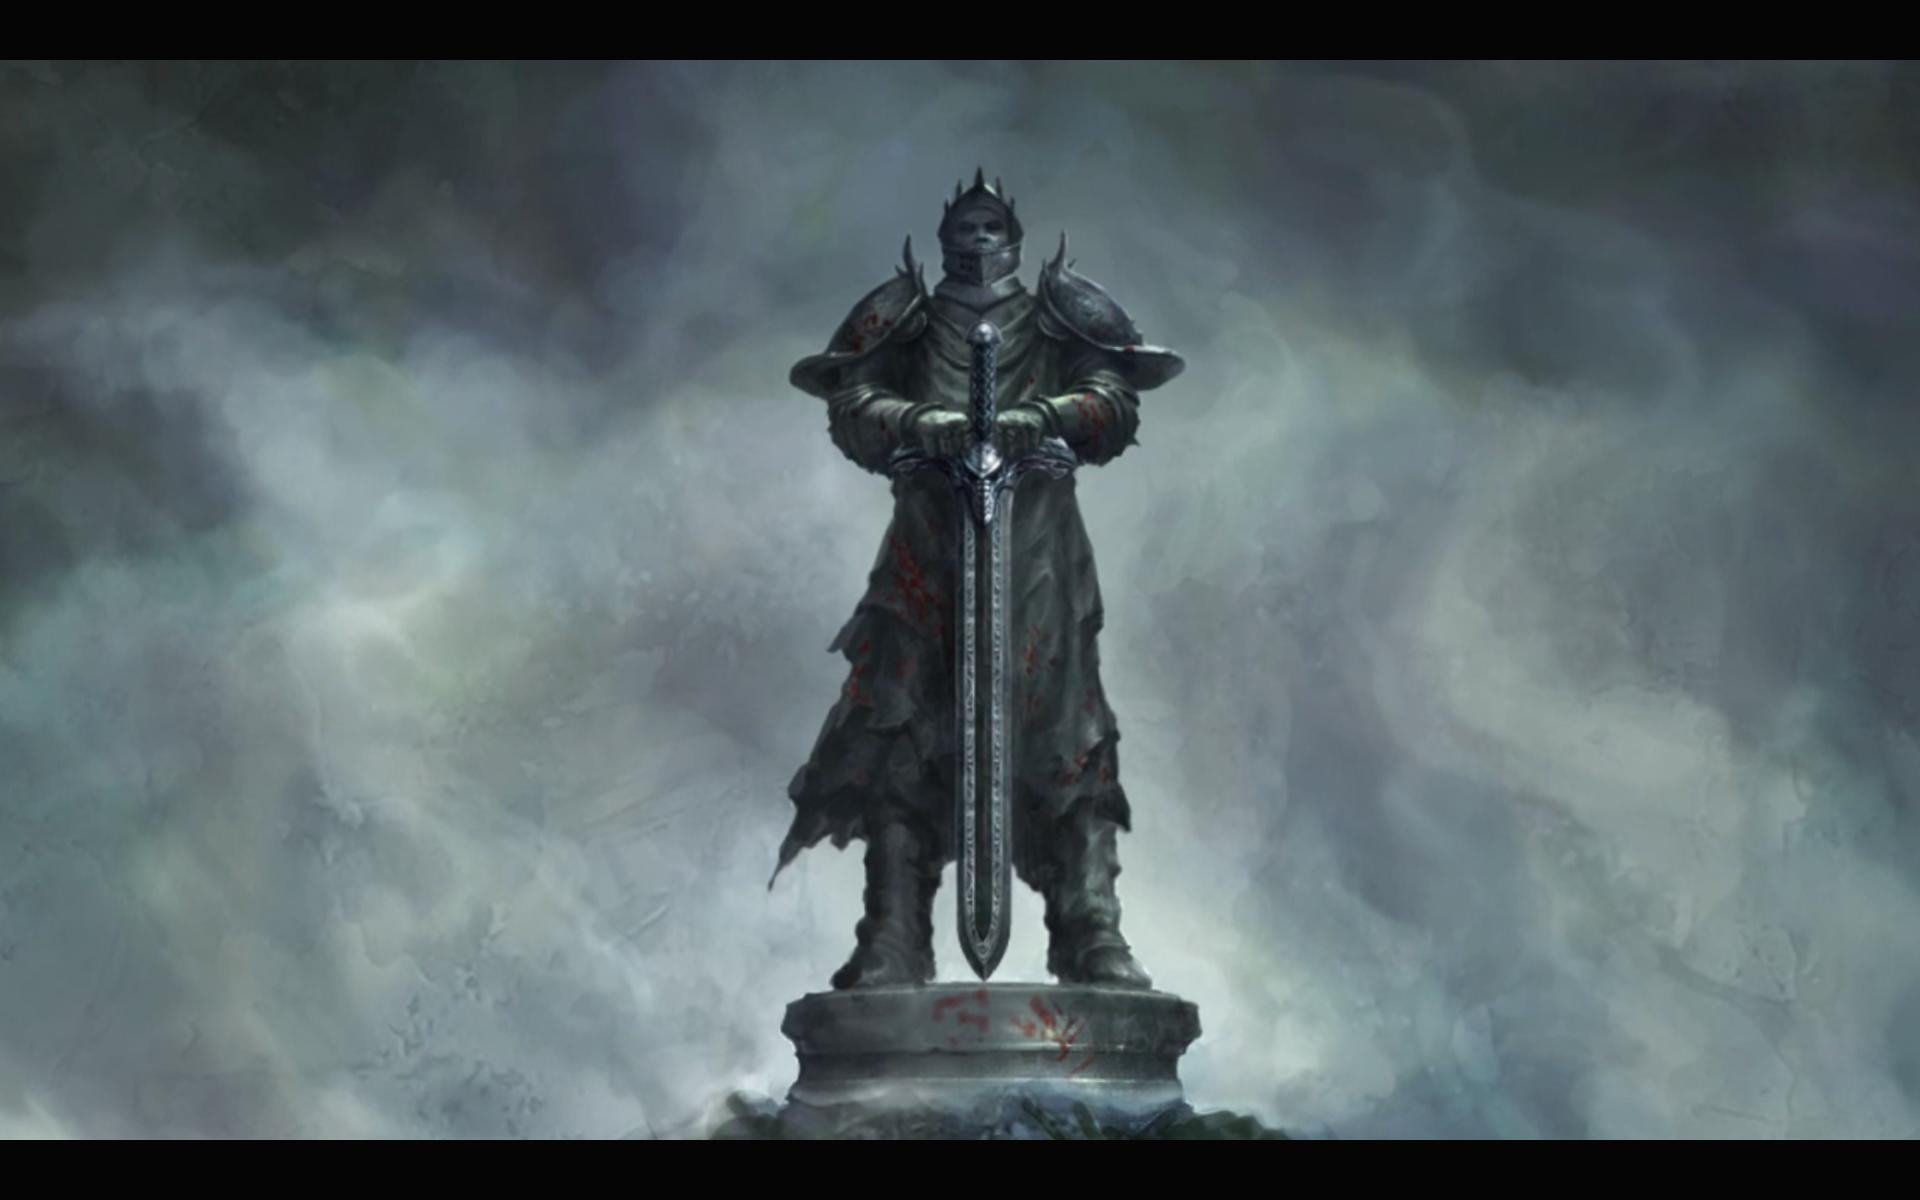 knight-medieval-mist-noble-royalty-statue-stone-sword-warrior.jpg